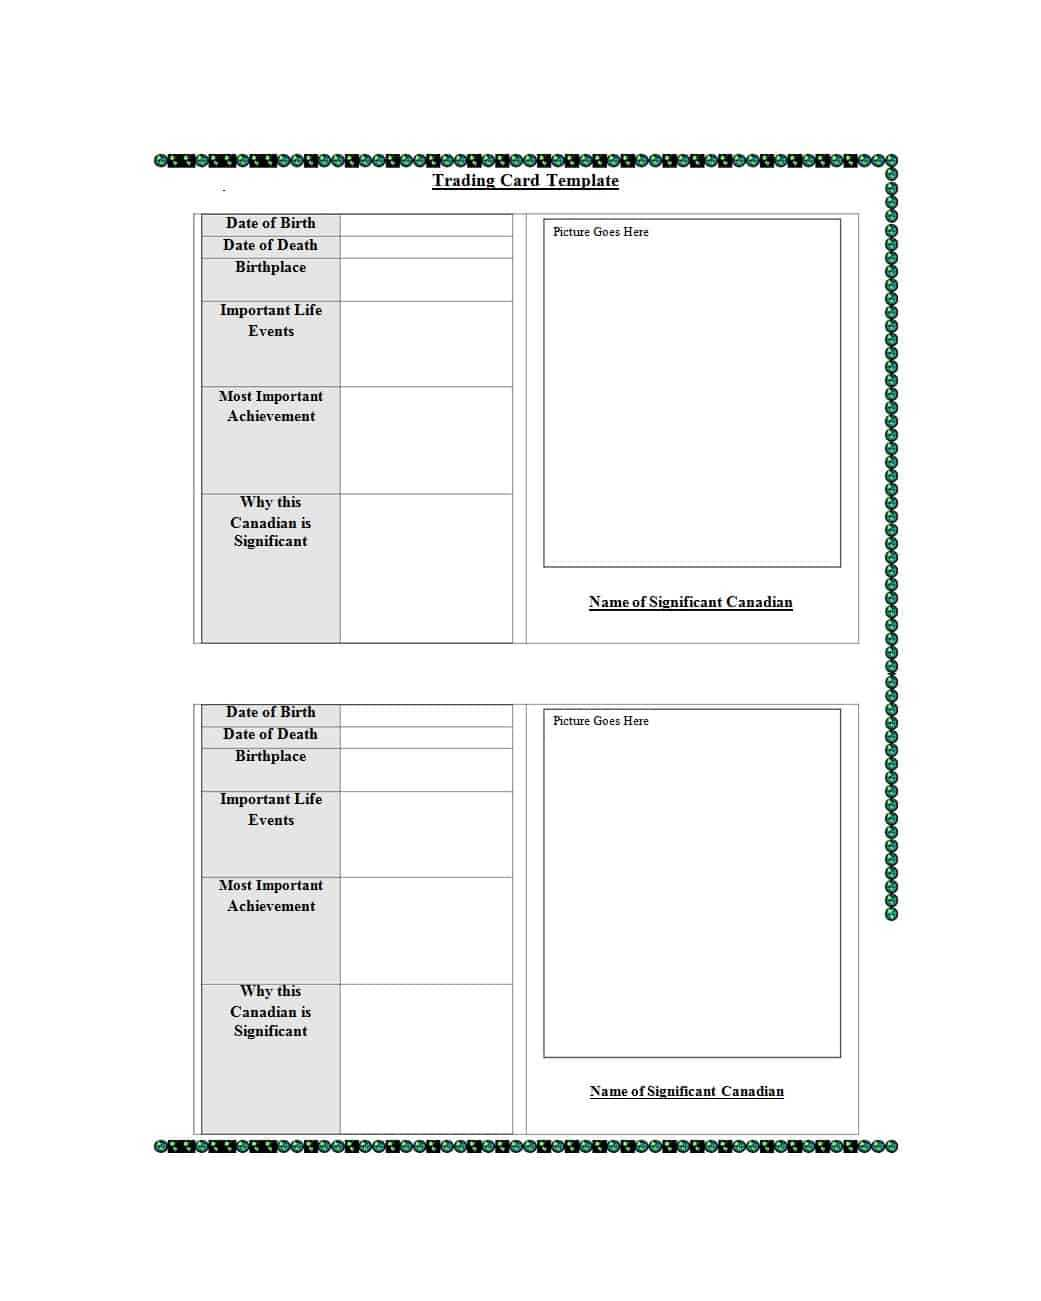 018 Printable Baseball Card Template Ideas Trading Wondrous Within Baseball Card Size Template